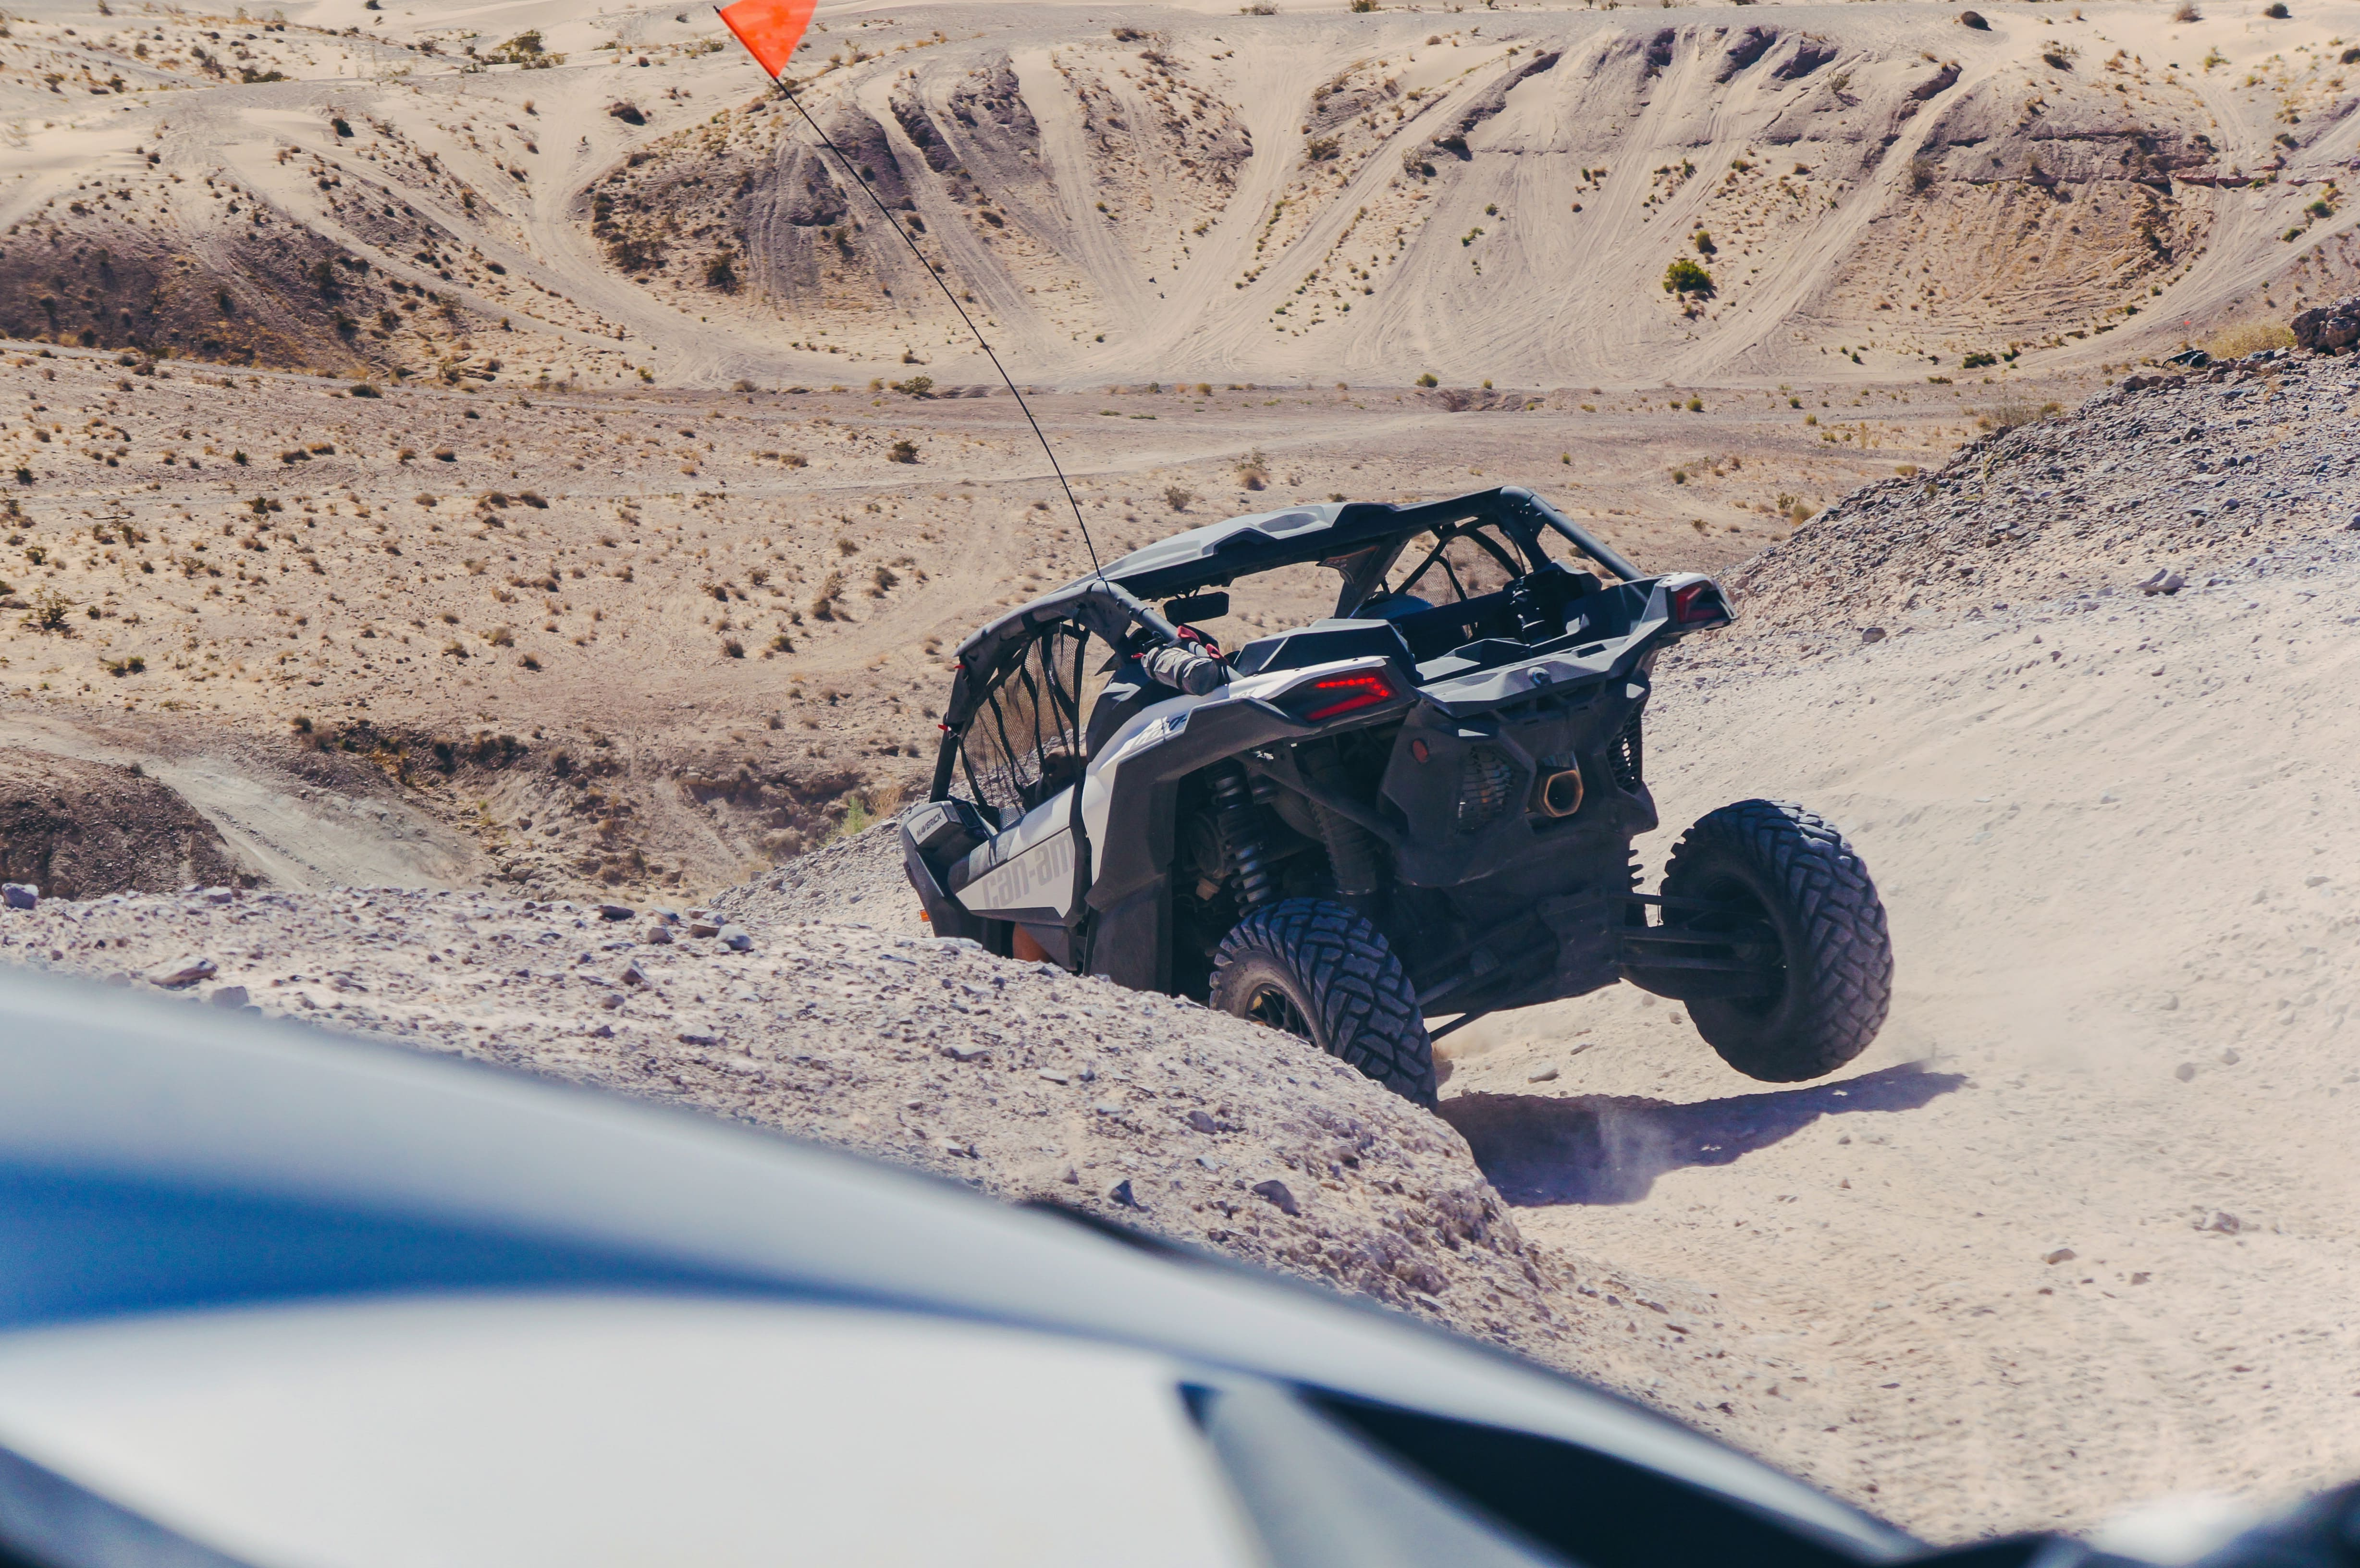 Riding a Maverick X3 in the desert